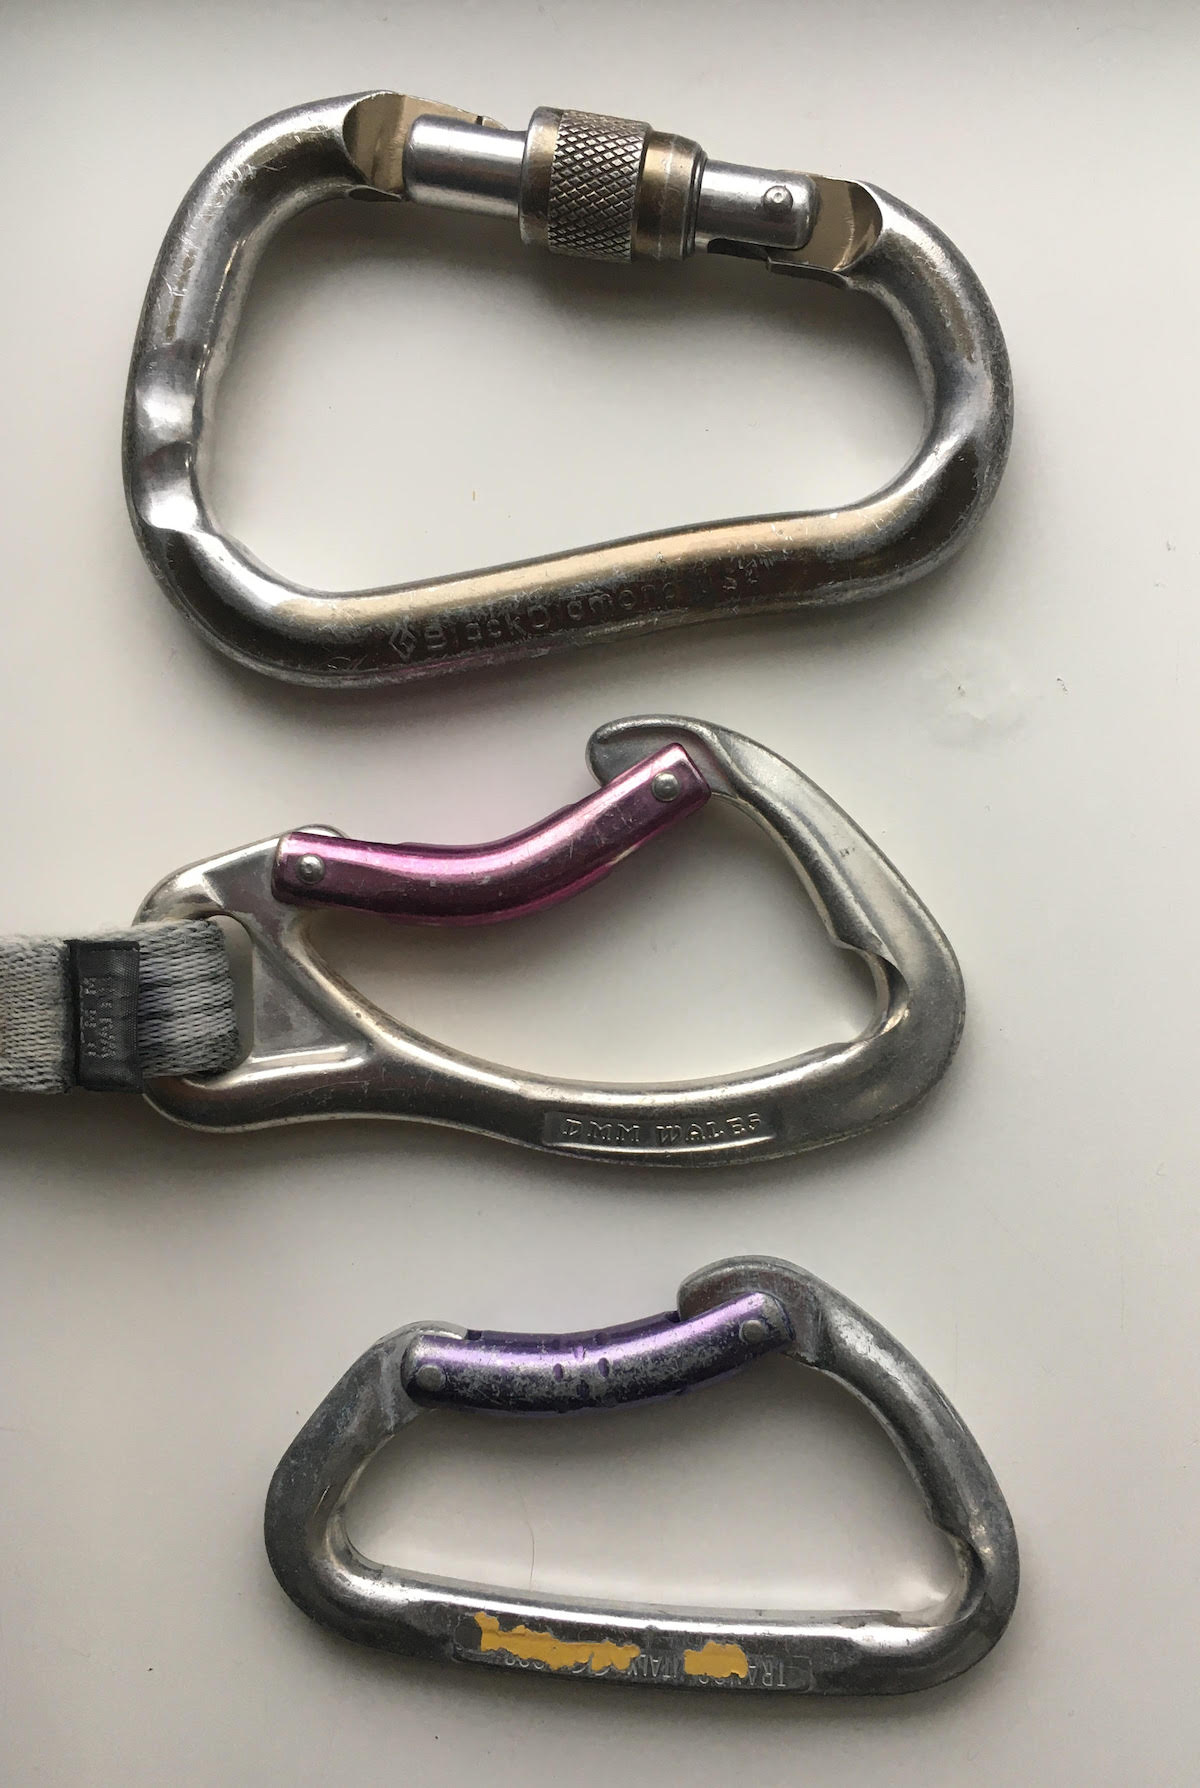 These carabiners were gouged by ropes. The top locking 'biner was used for a tube-style belay/rappel device, resulting in the double grooves. [Photo] Derek Franz